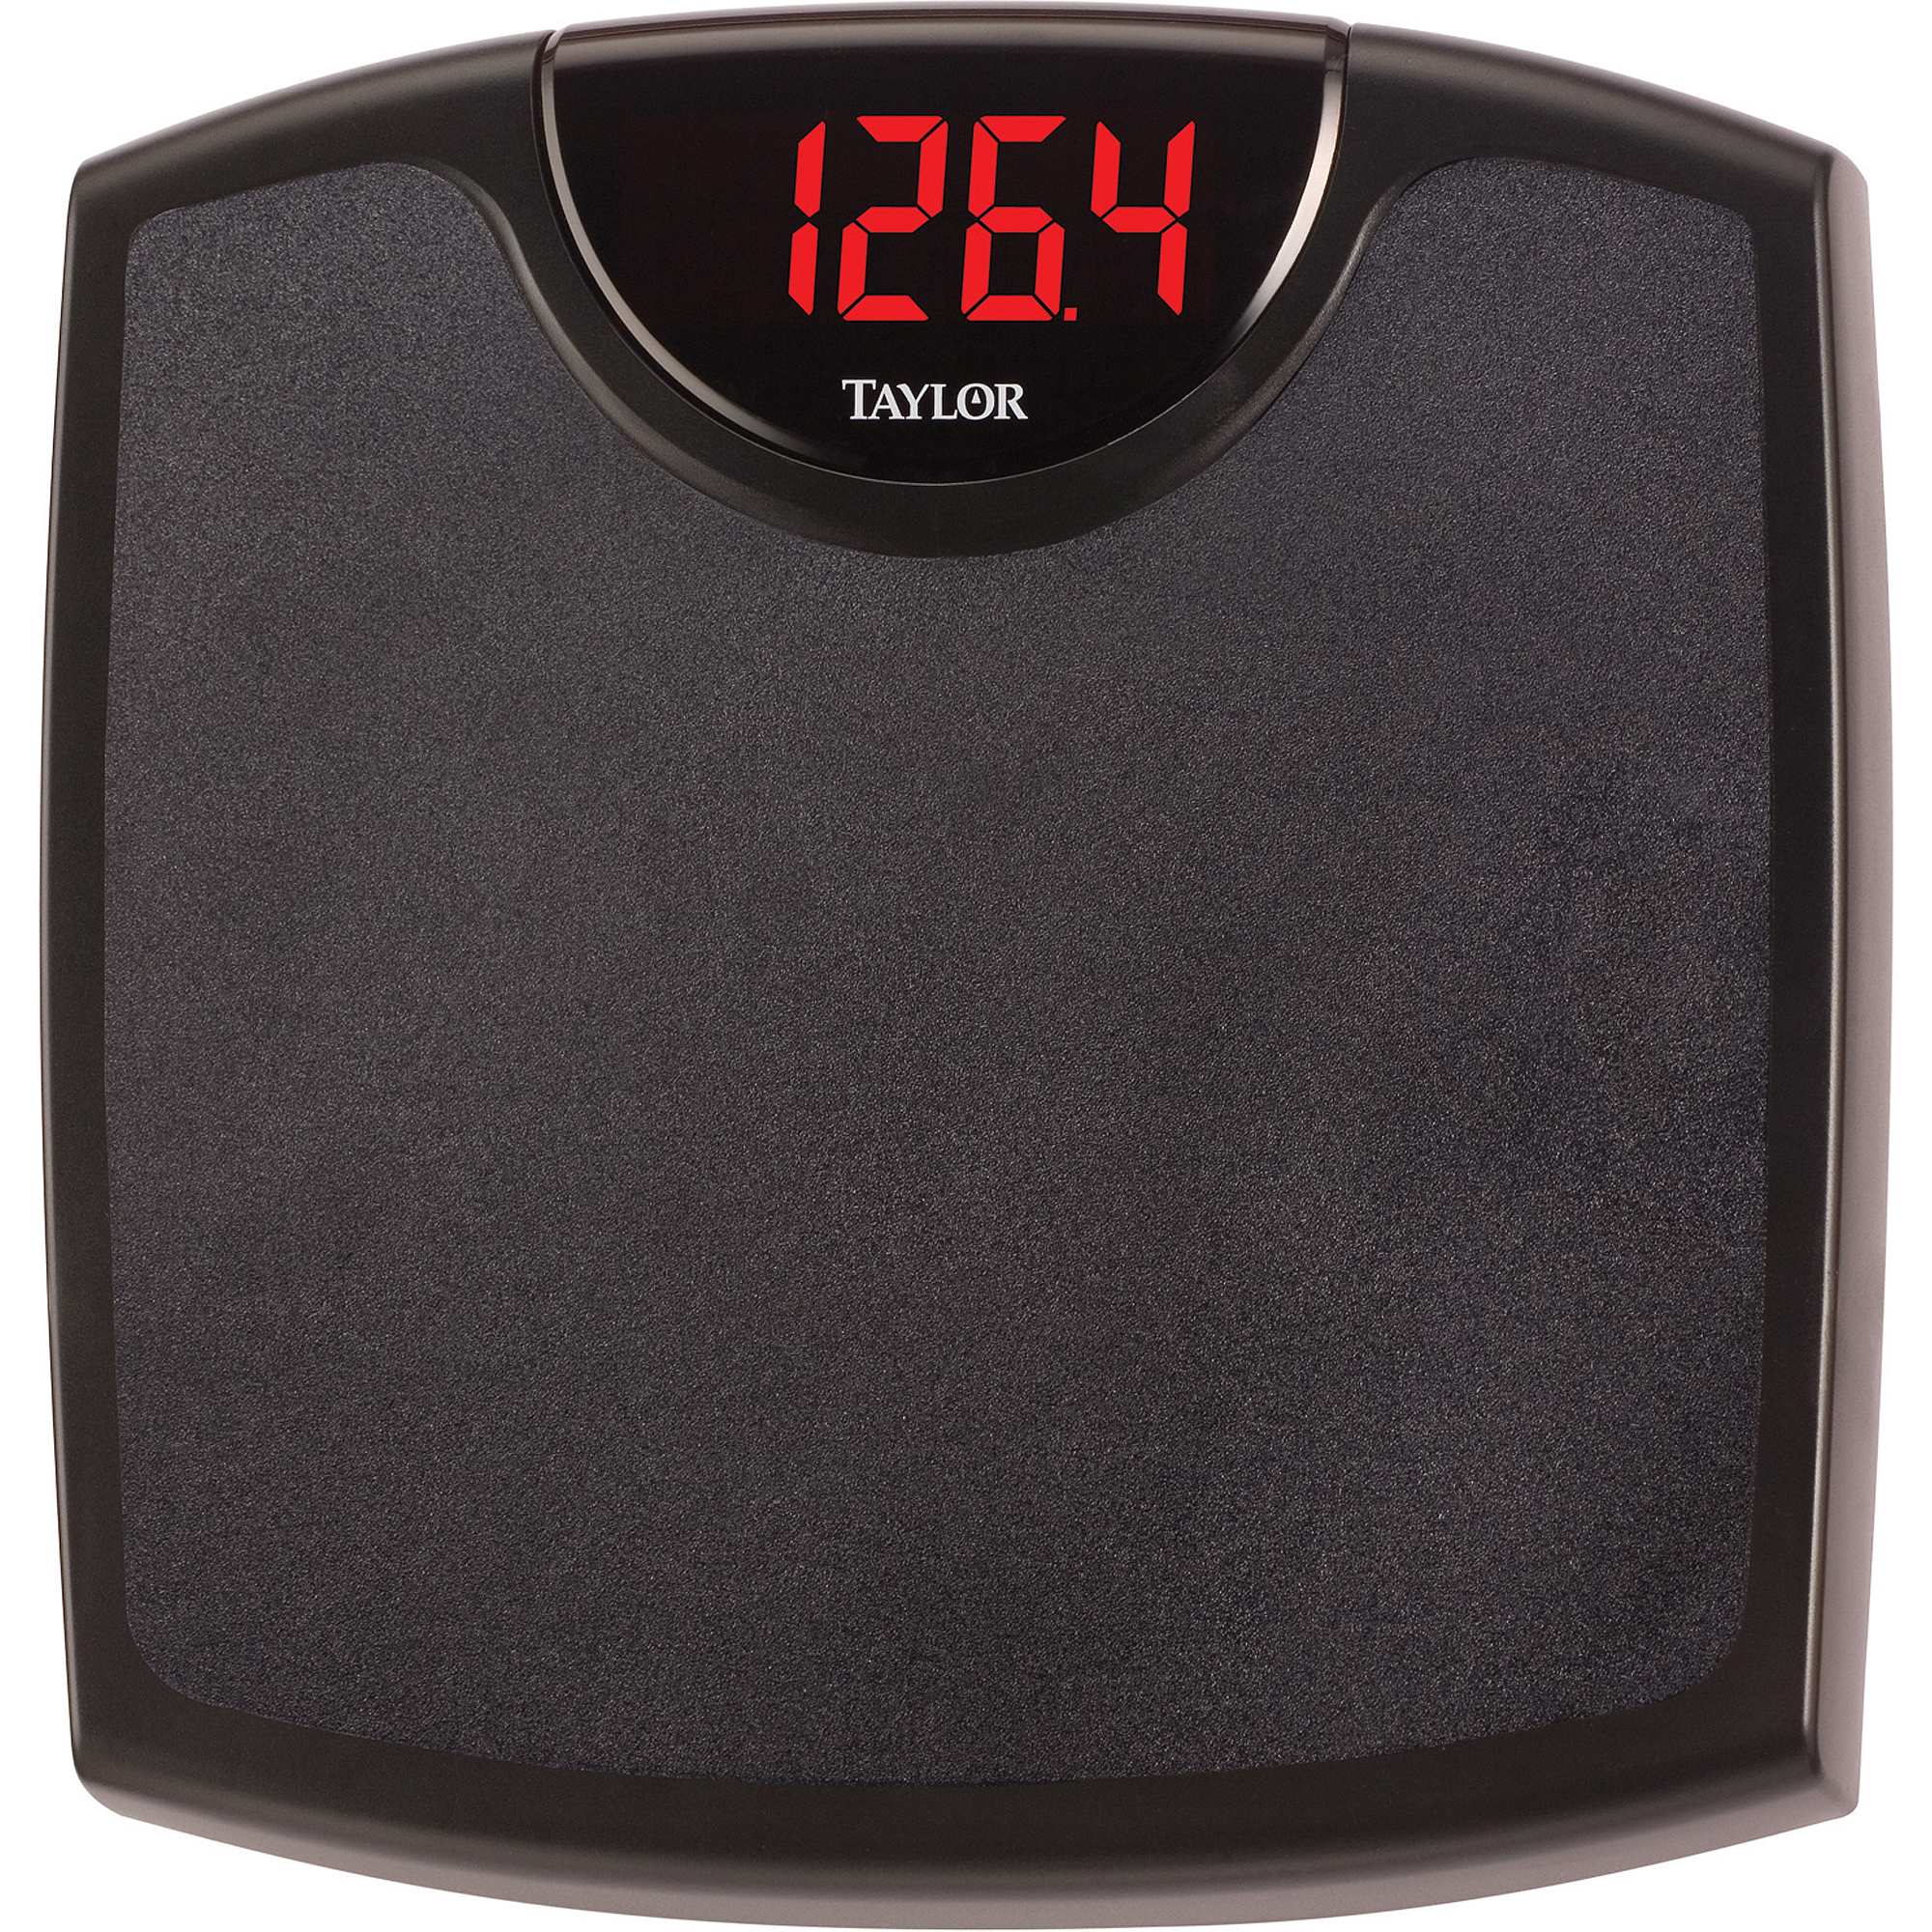 bathroom scales - walmart - walmart